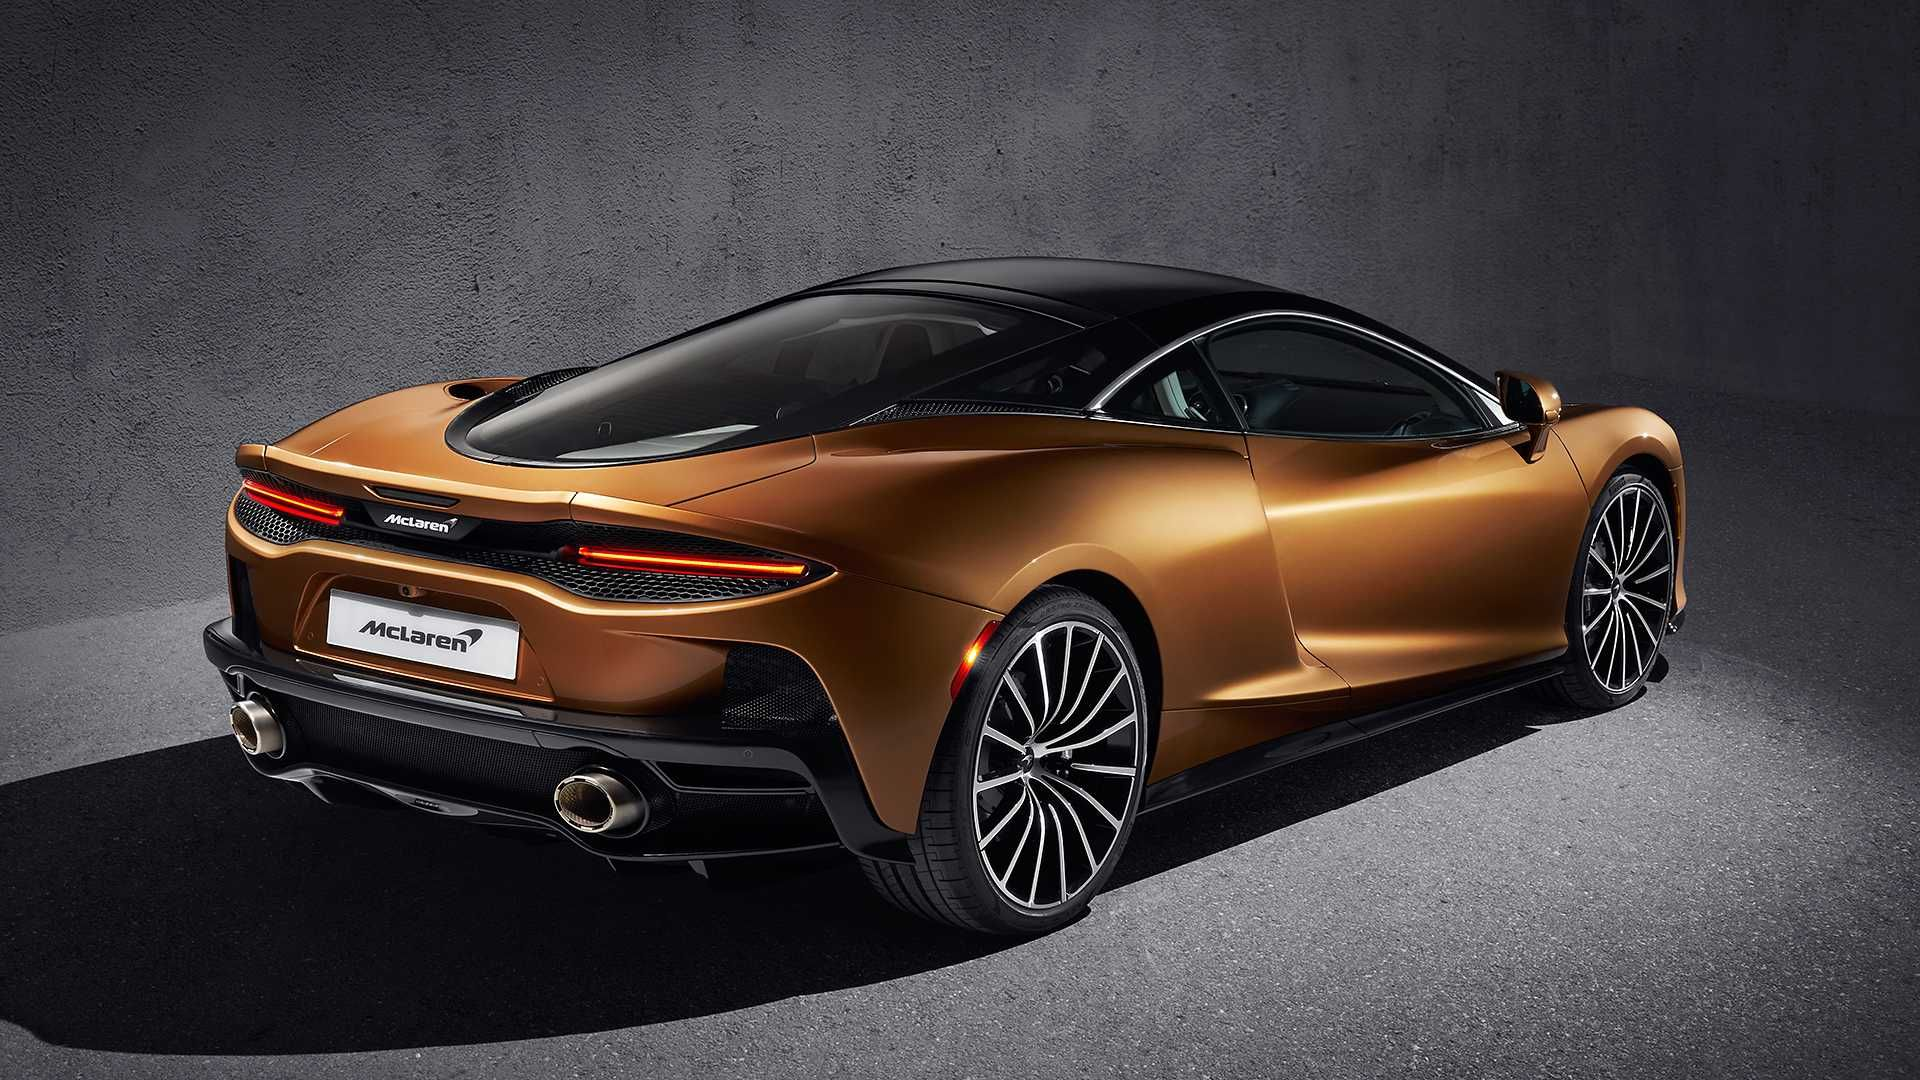 New Mclaren Gt Supercar Gives You Comfort And Speed New Mclaren Super Cars Mclaren